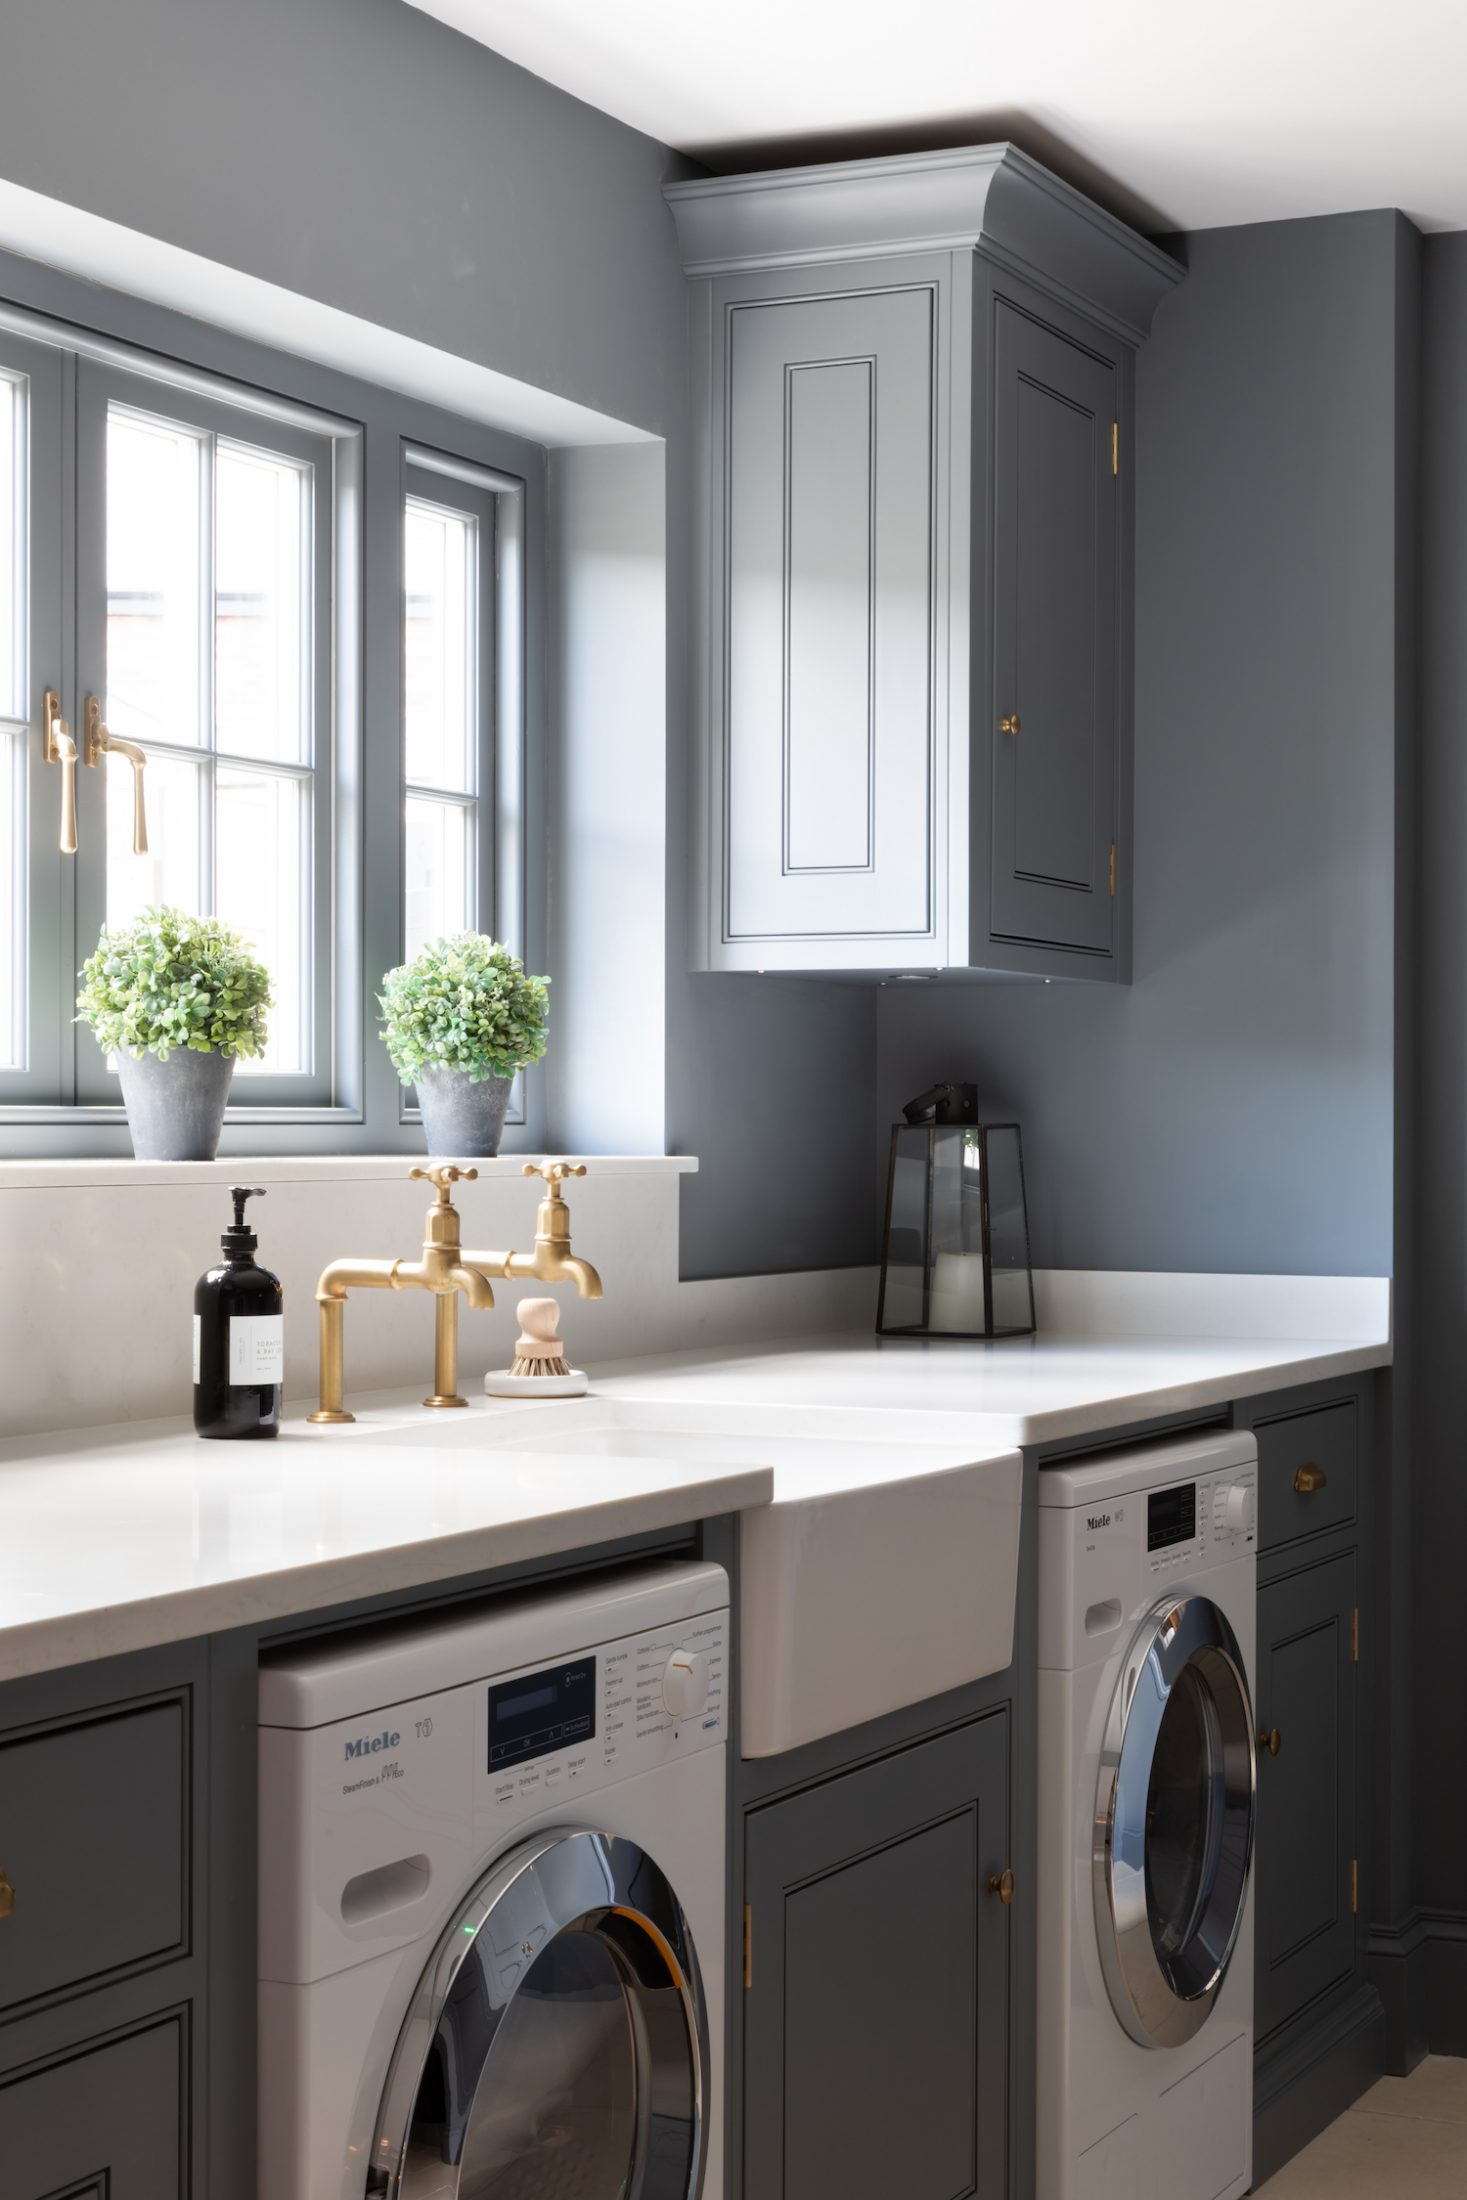 Spenlow Utility Room At The Hm Showroom In Felsted Essex Humphrey Munson Kitchens